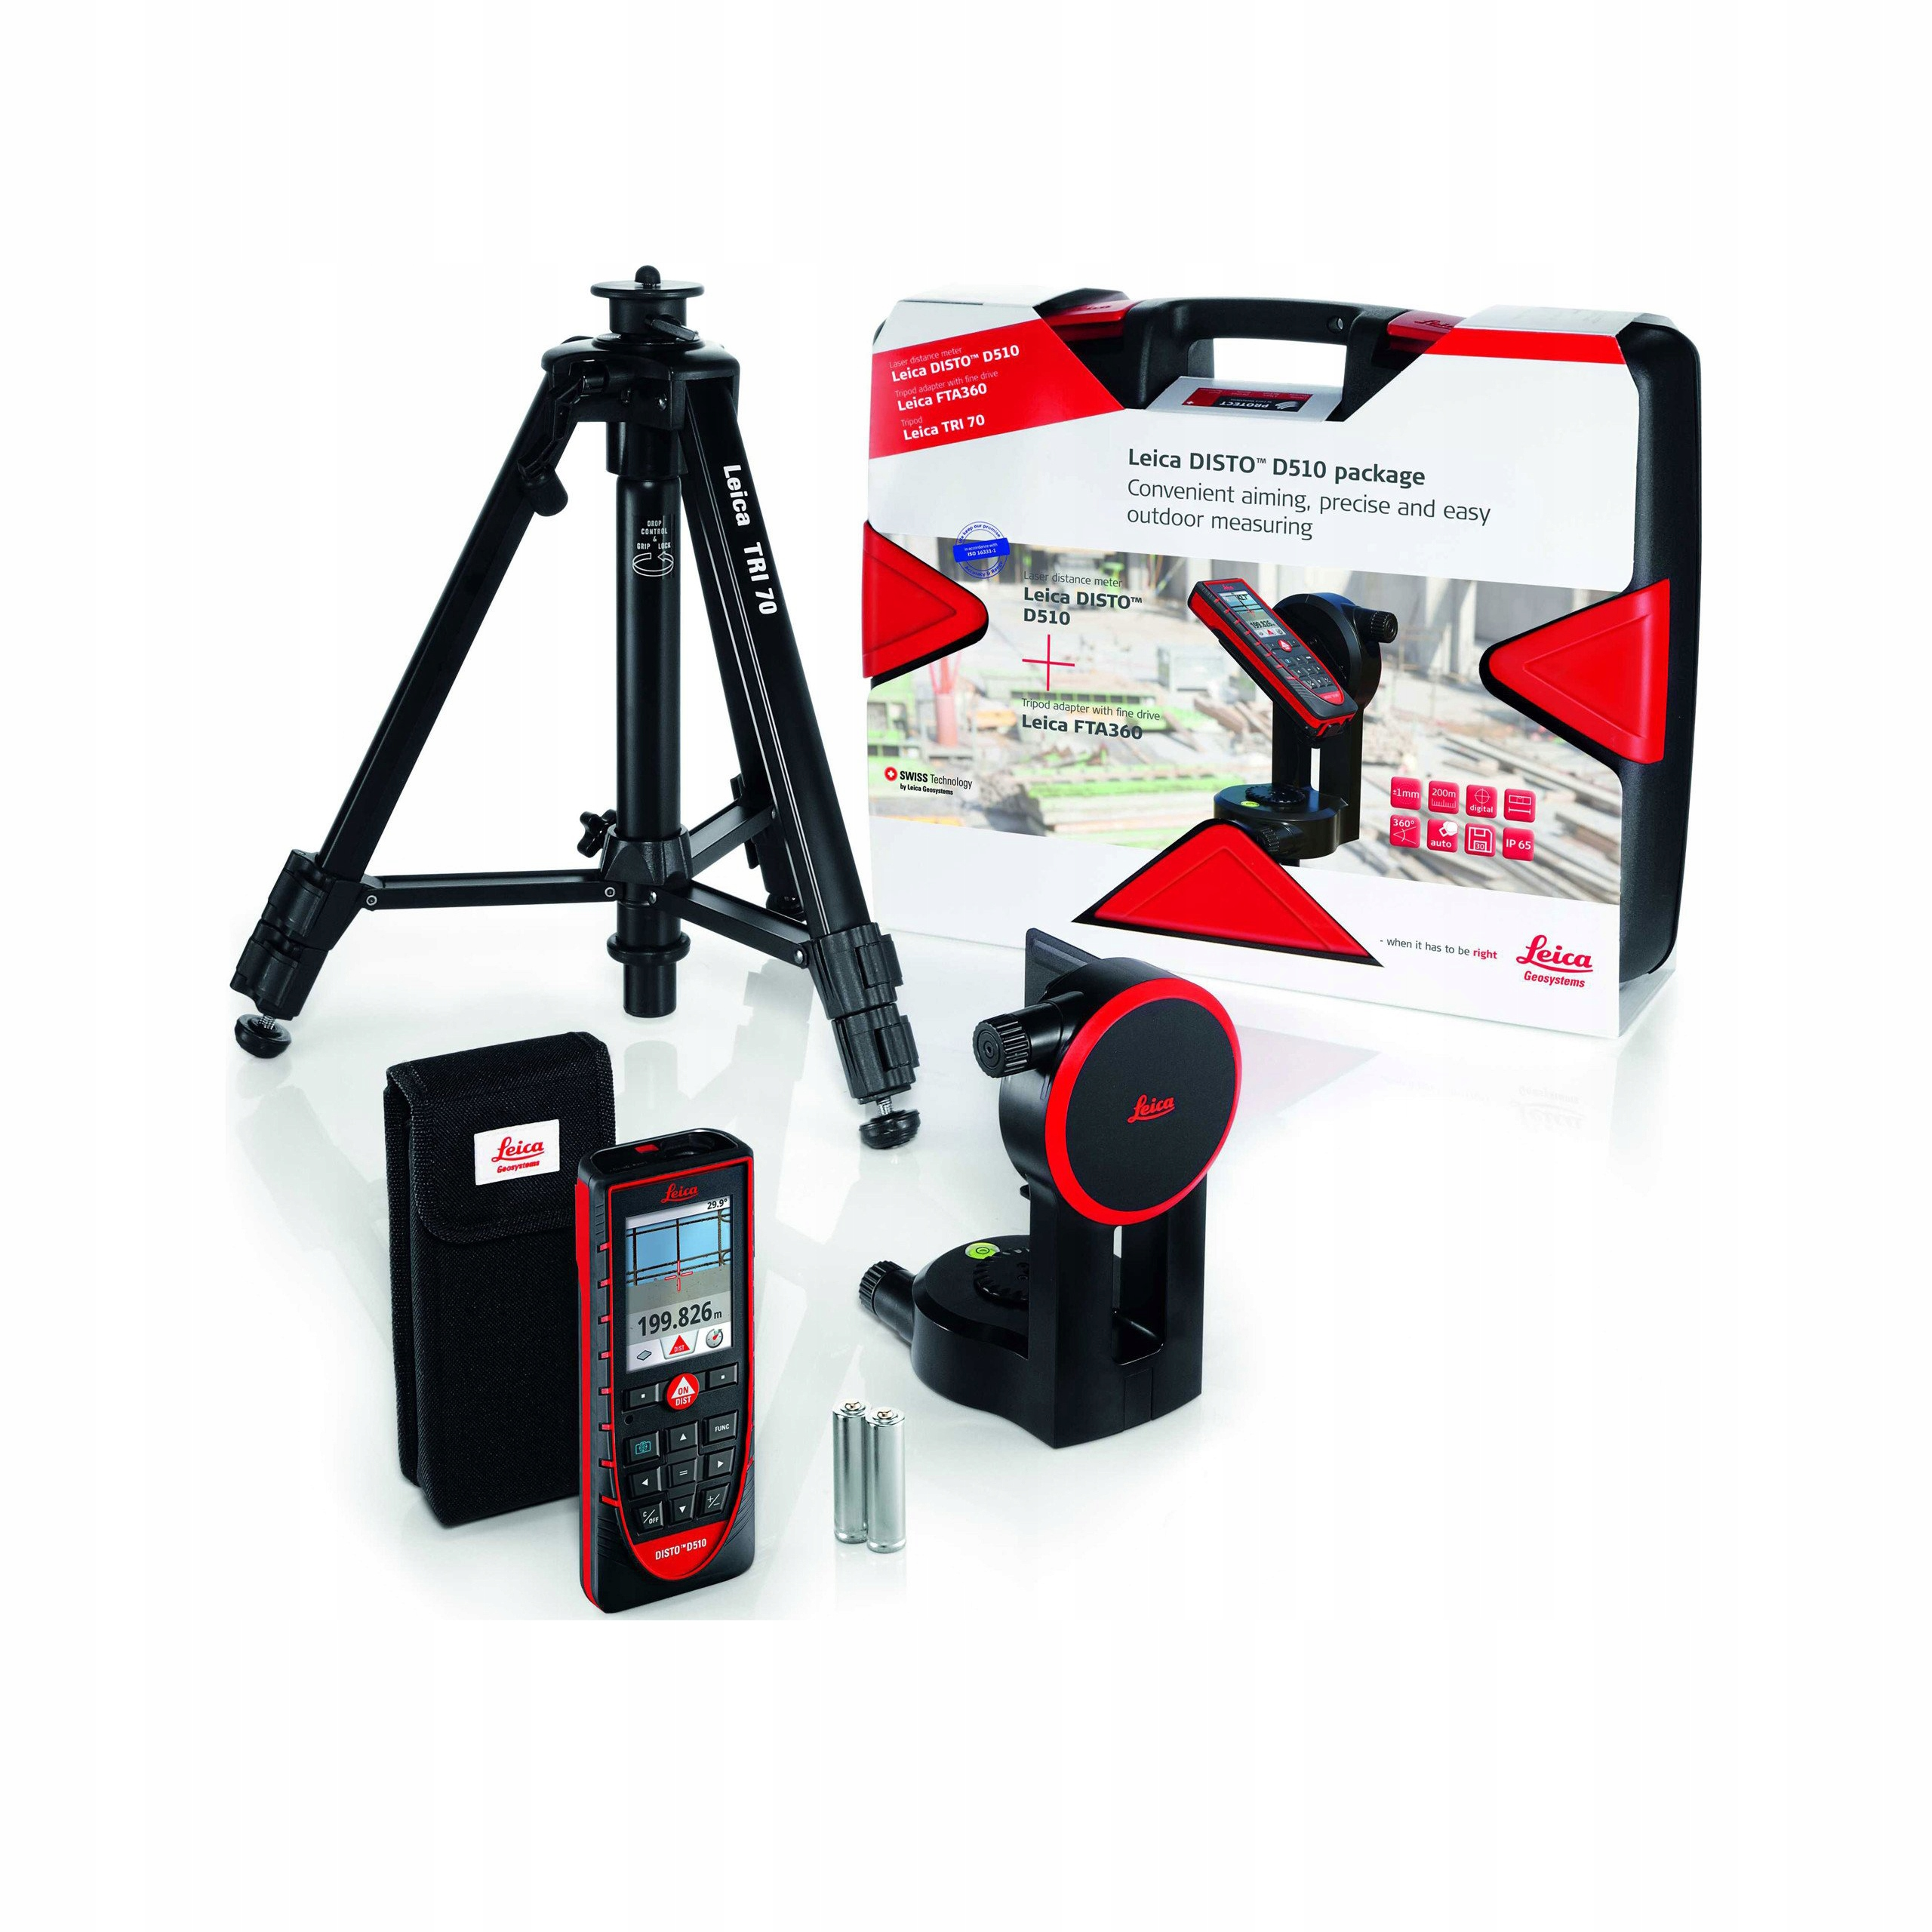 Dalmierz laserowy Leica Disto D510 Pro Pack